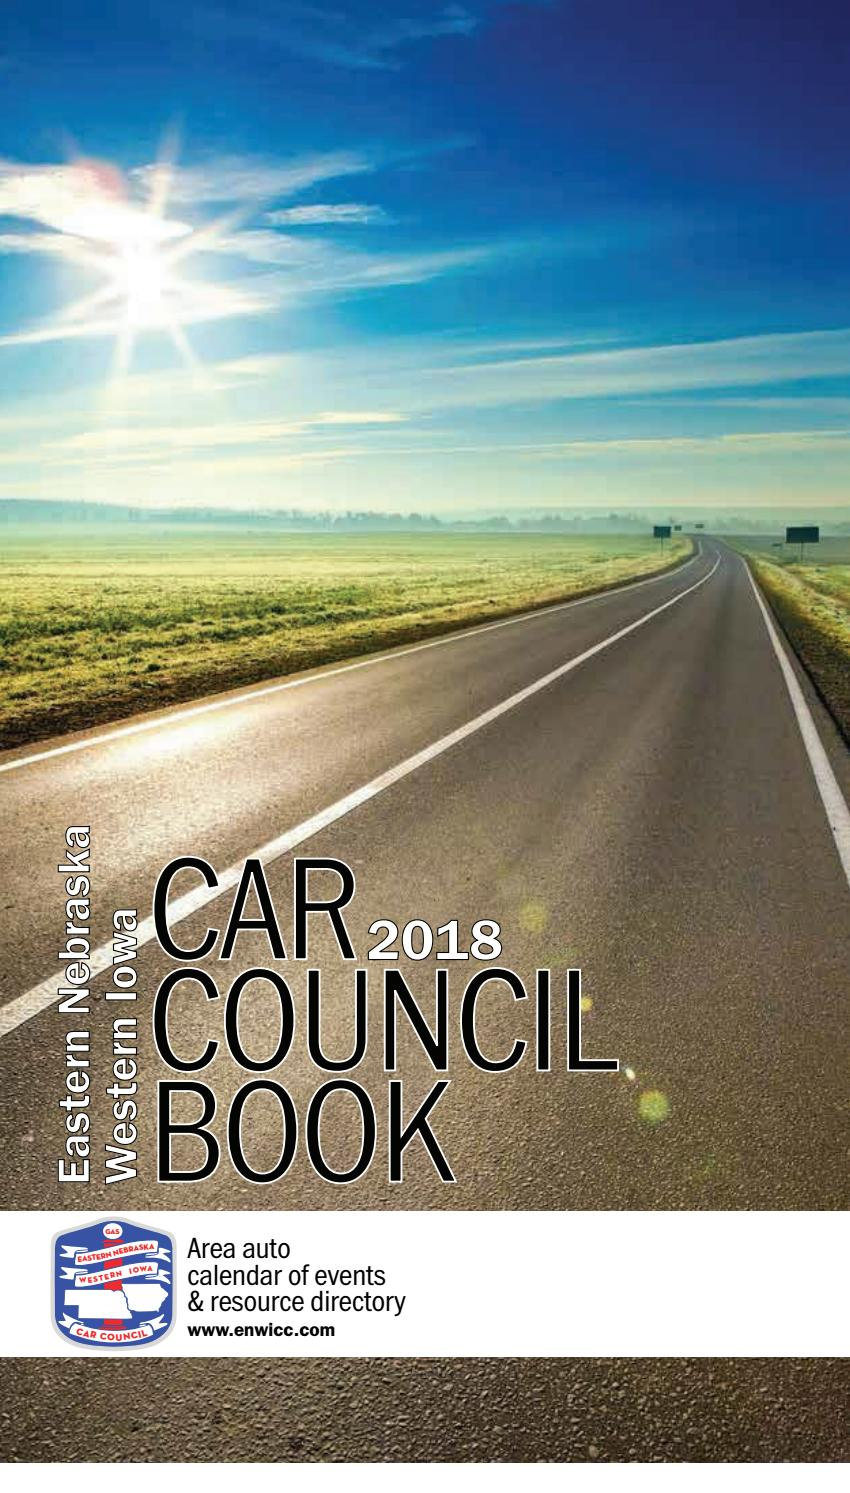 medium resolution of eastern nebraska western iowa car council book 2018 by suburban newspapers issuu